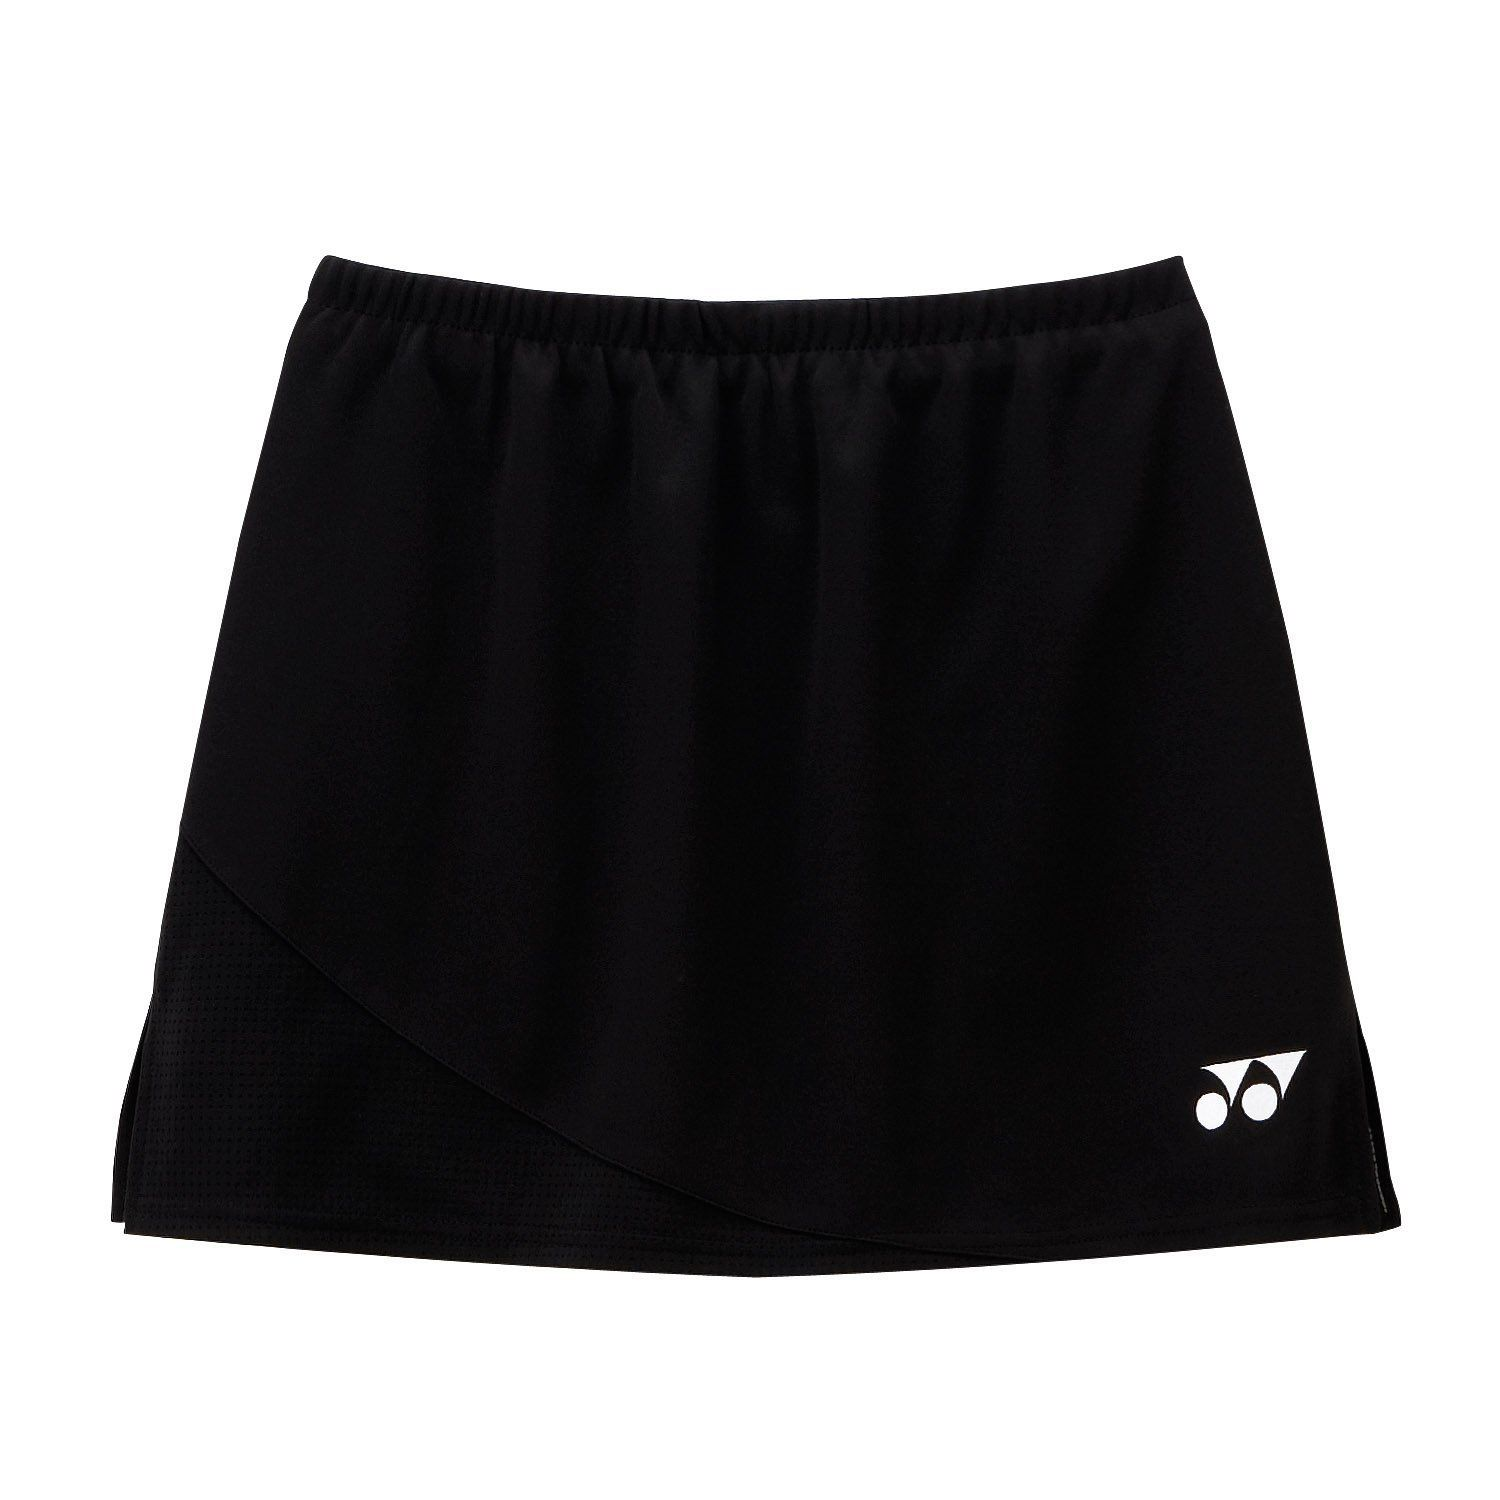 Yonex - Ladies Skirt Signe Black